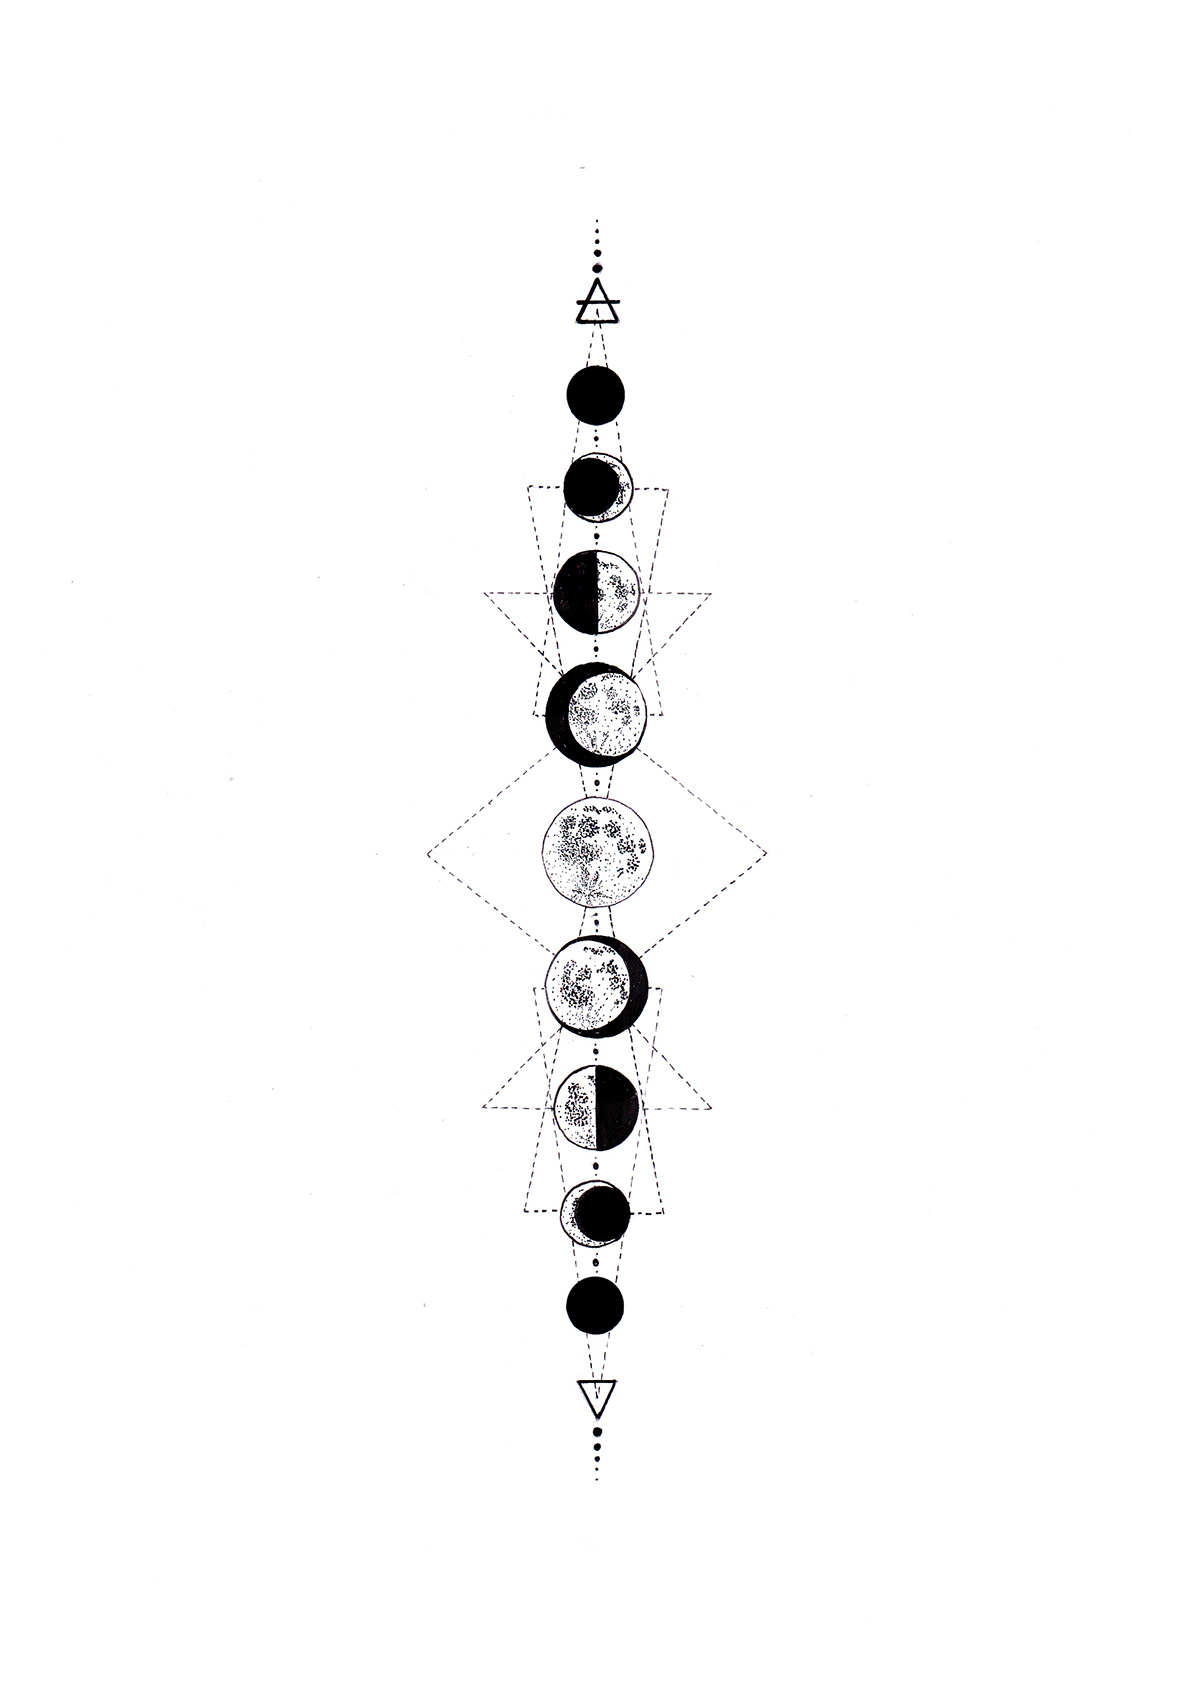 Moon Phases on Behance